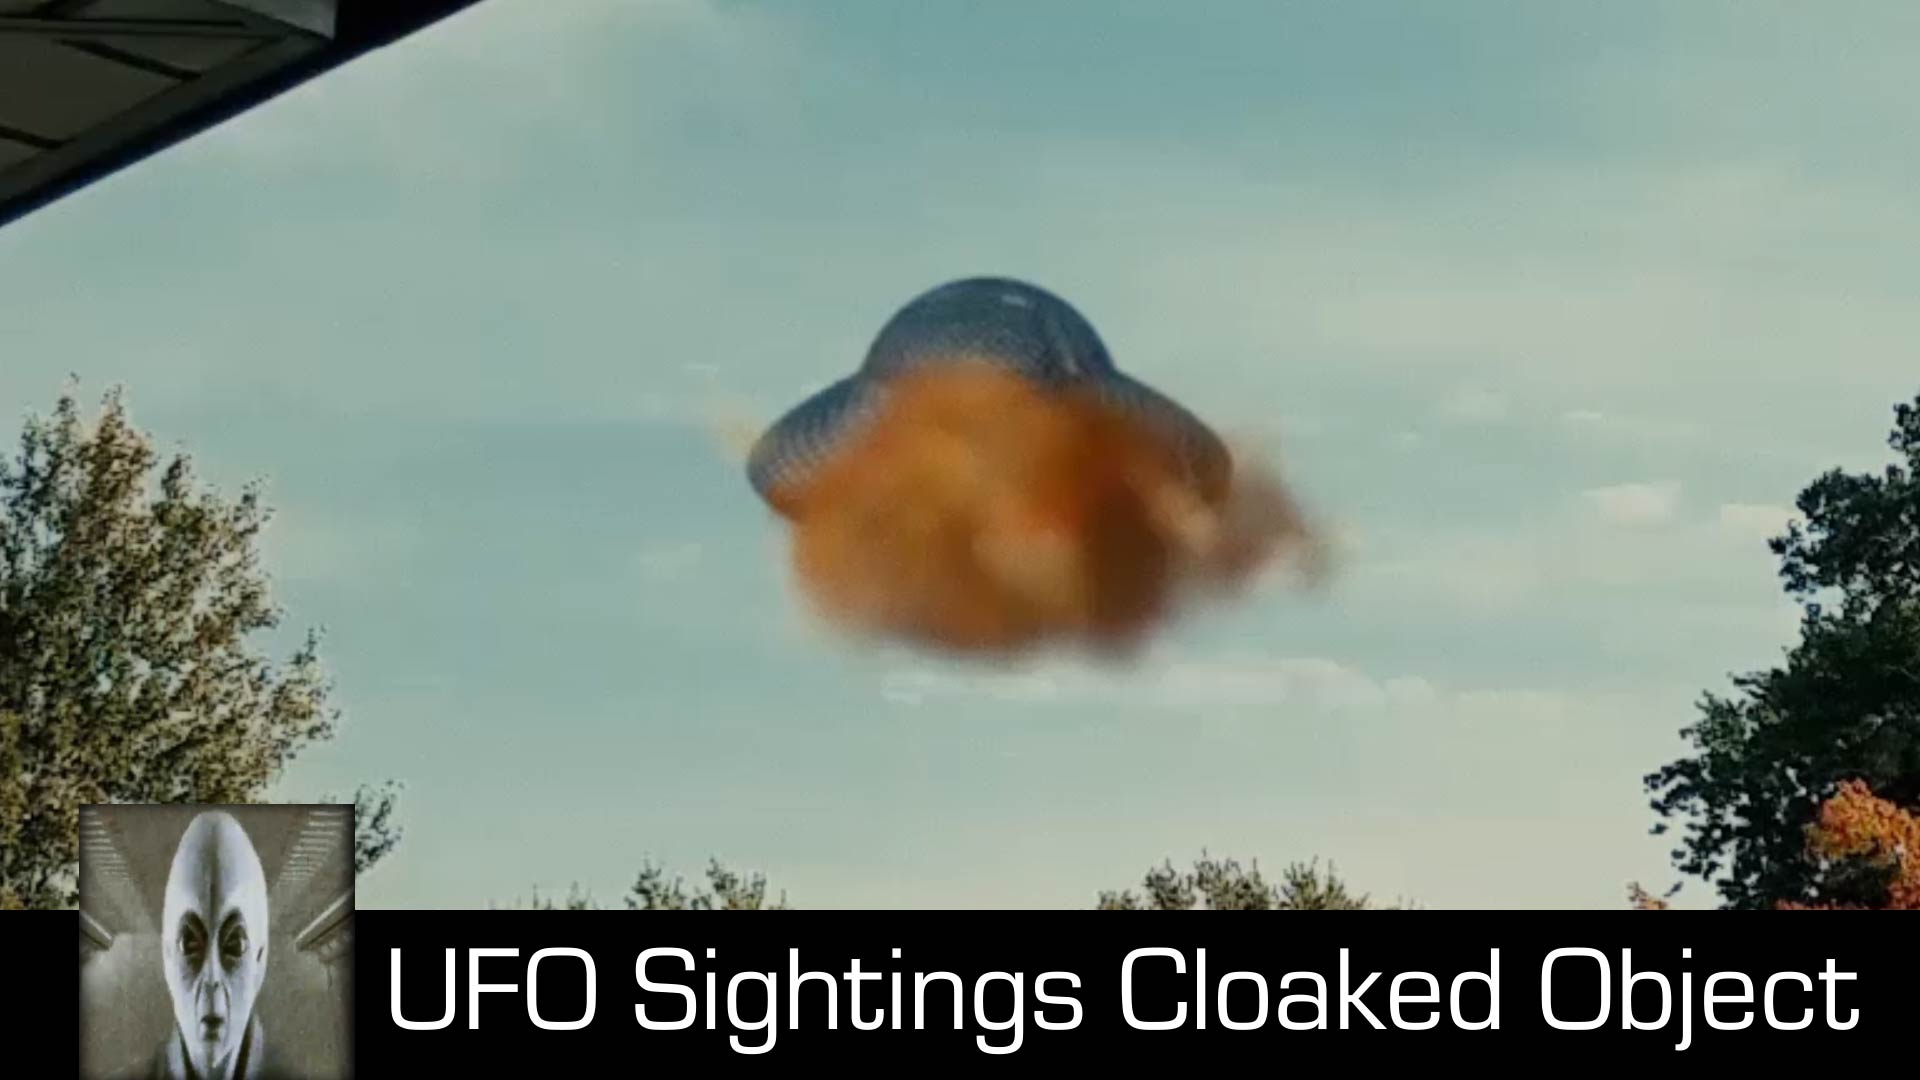 UFO Sightings Cloaked Object December 11th 2017